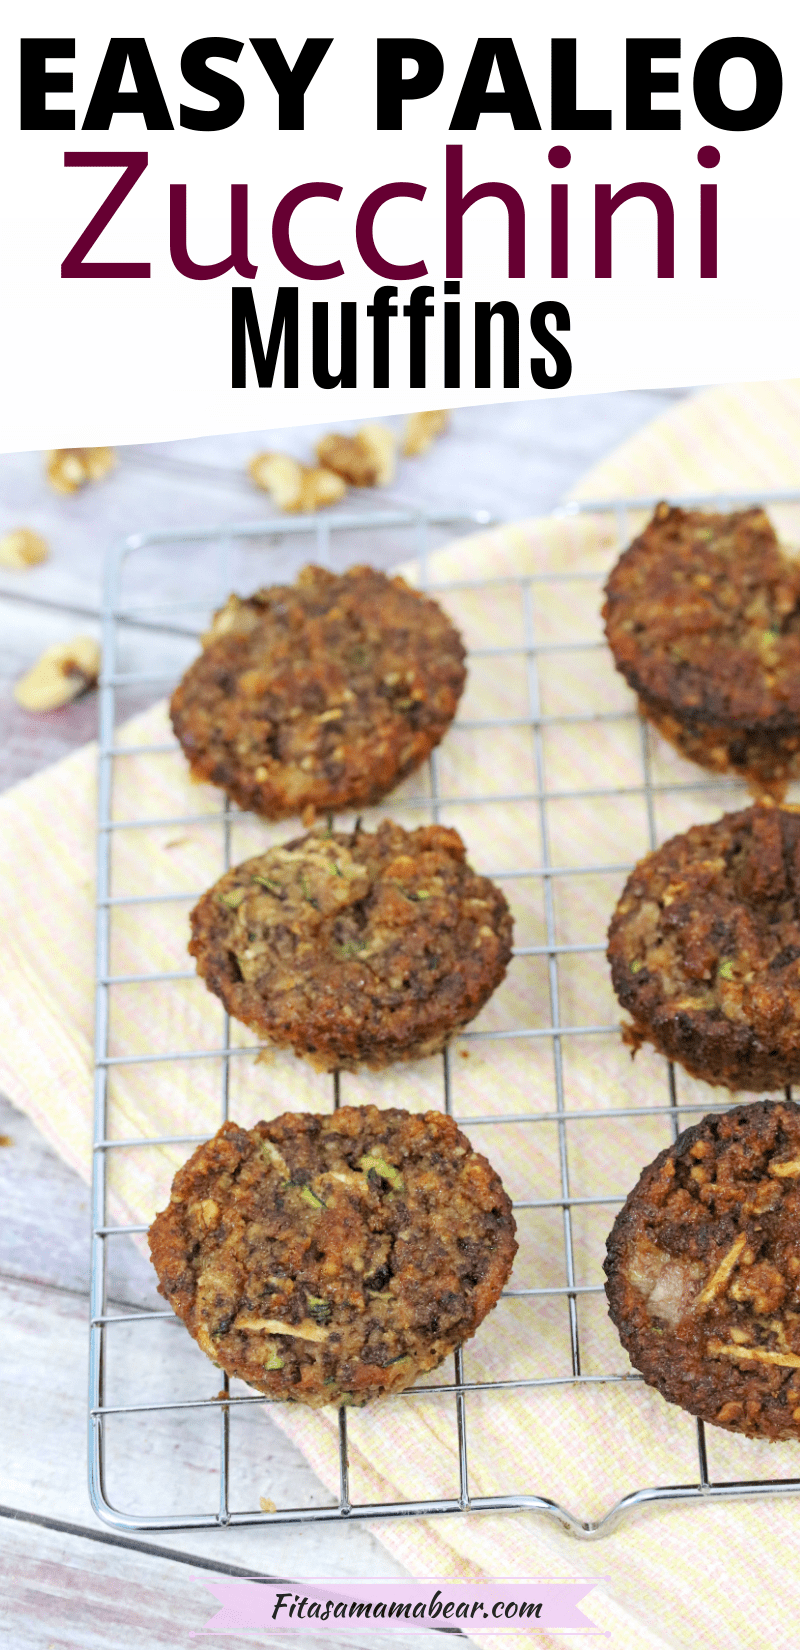 Pinterest image with text: Gluten-free zucchini muffins on a cooling rack over a peach linen with walnuts around it